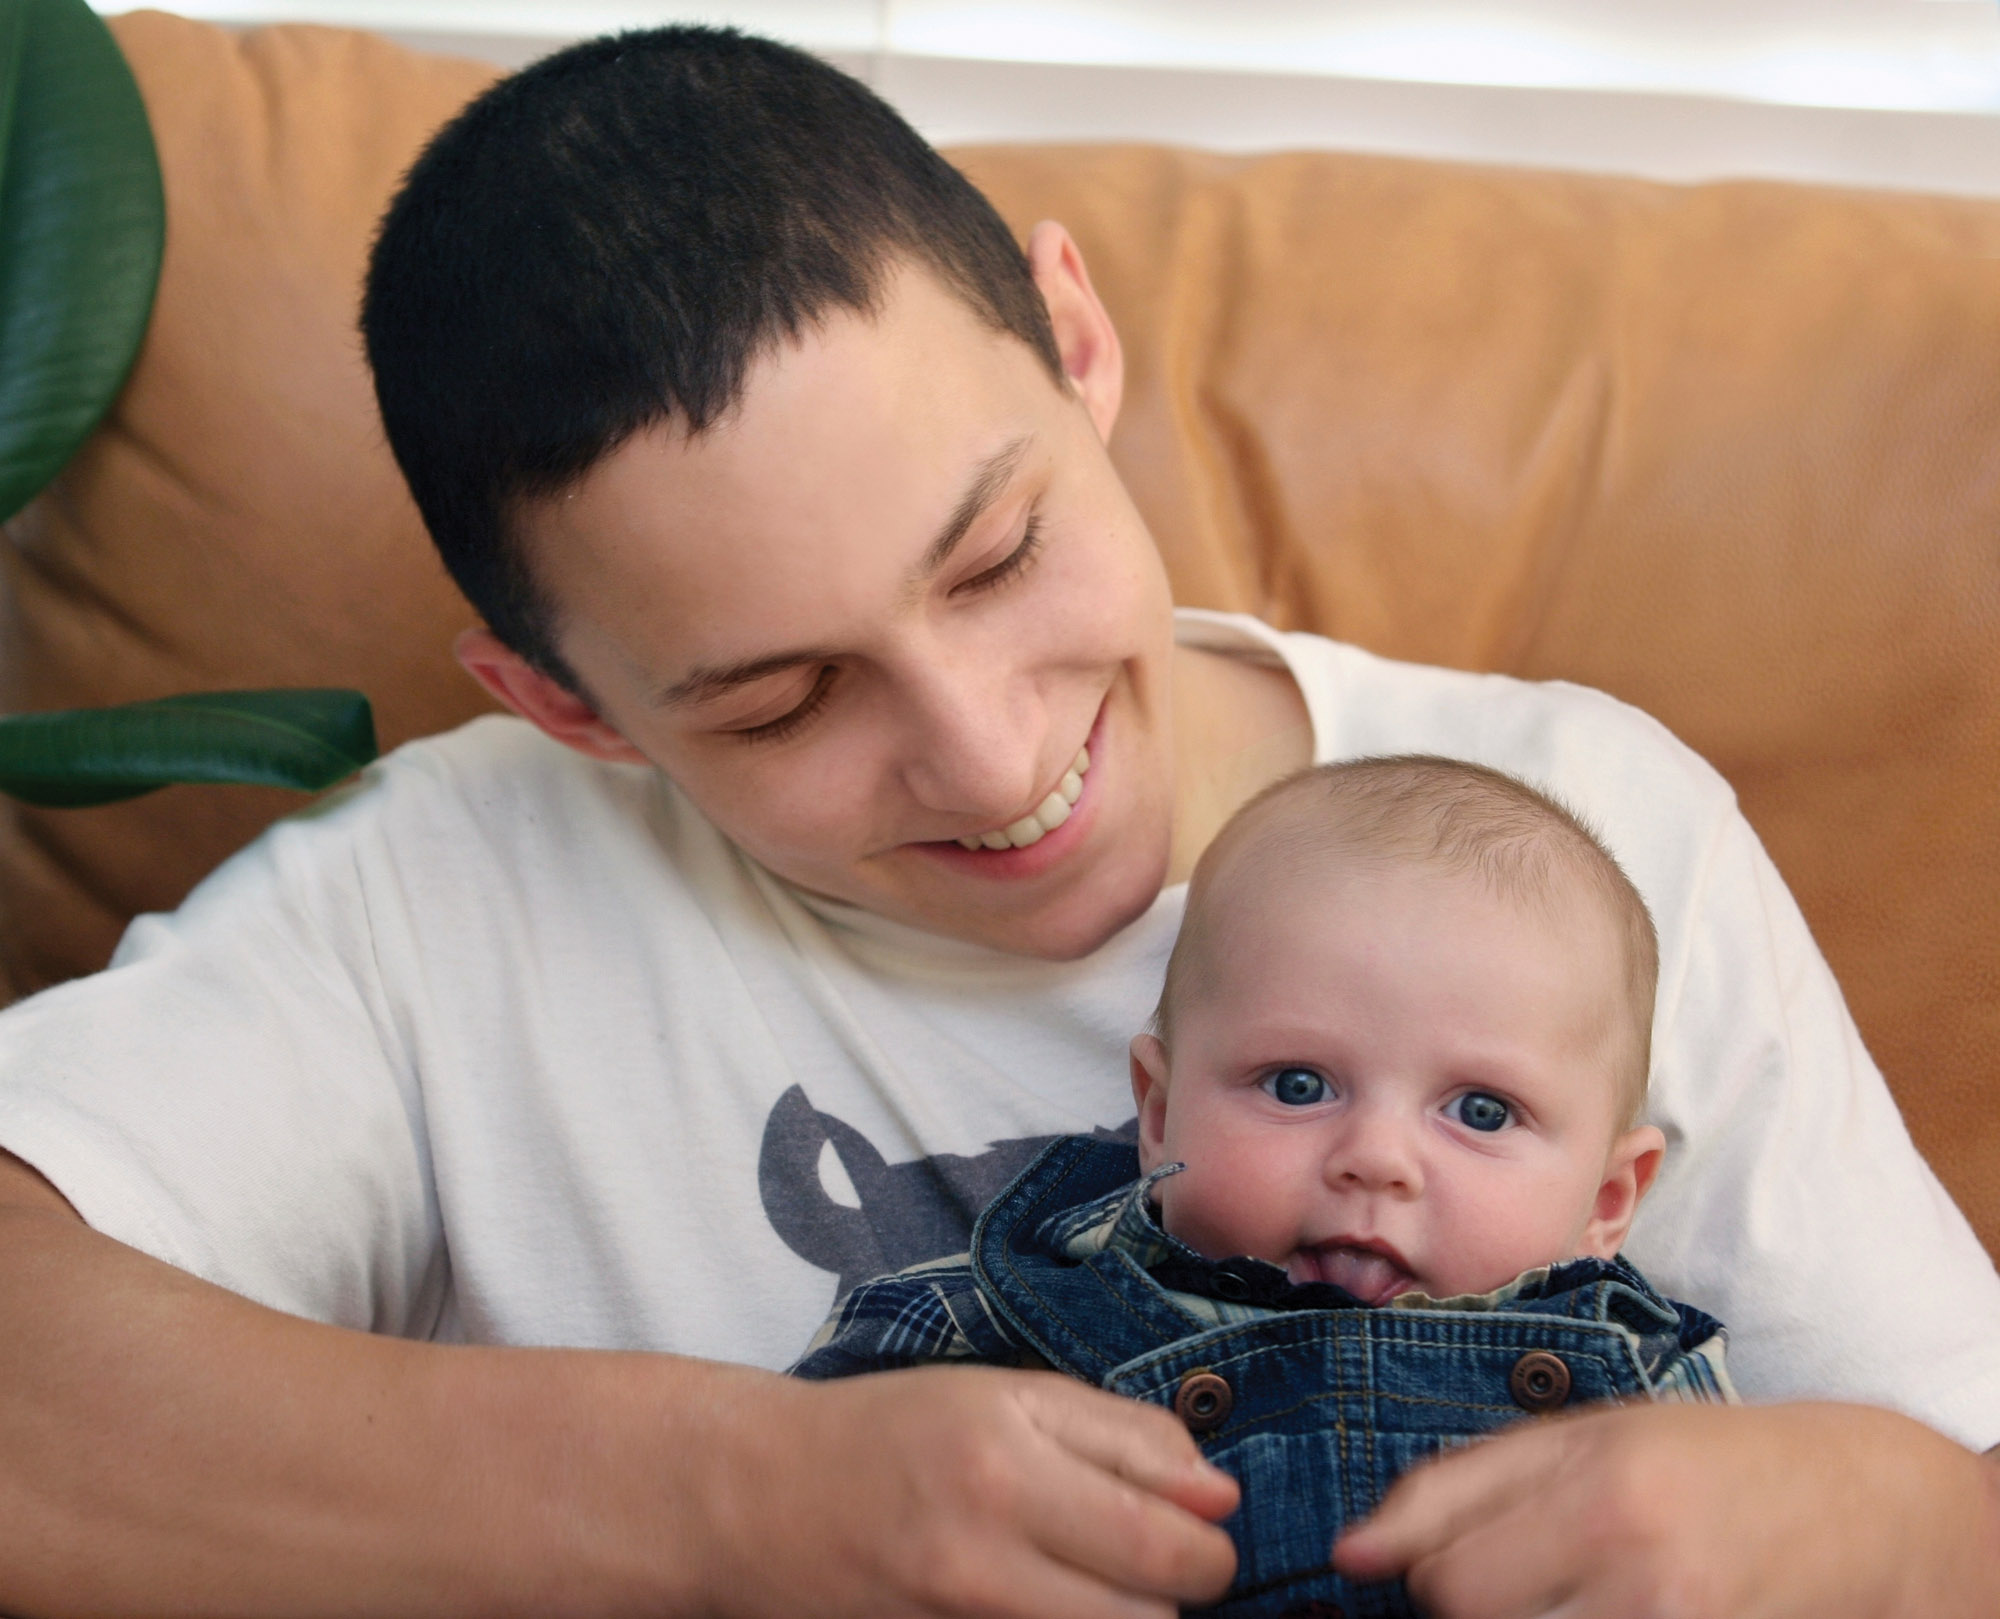 Parenting programs sideline fathers with long-term costs for families and children